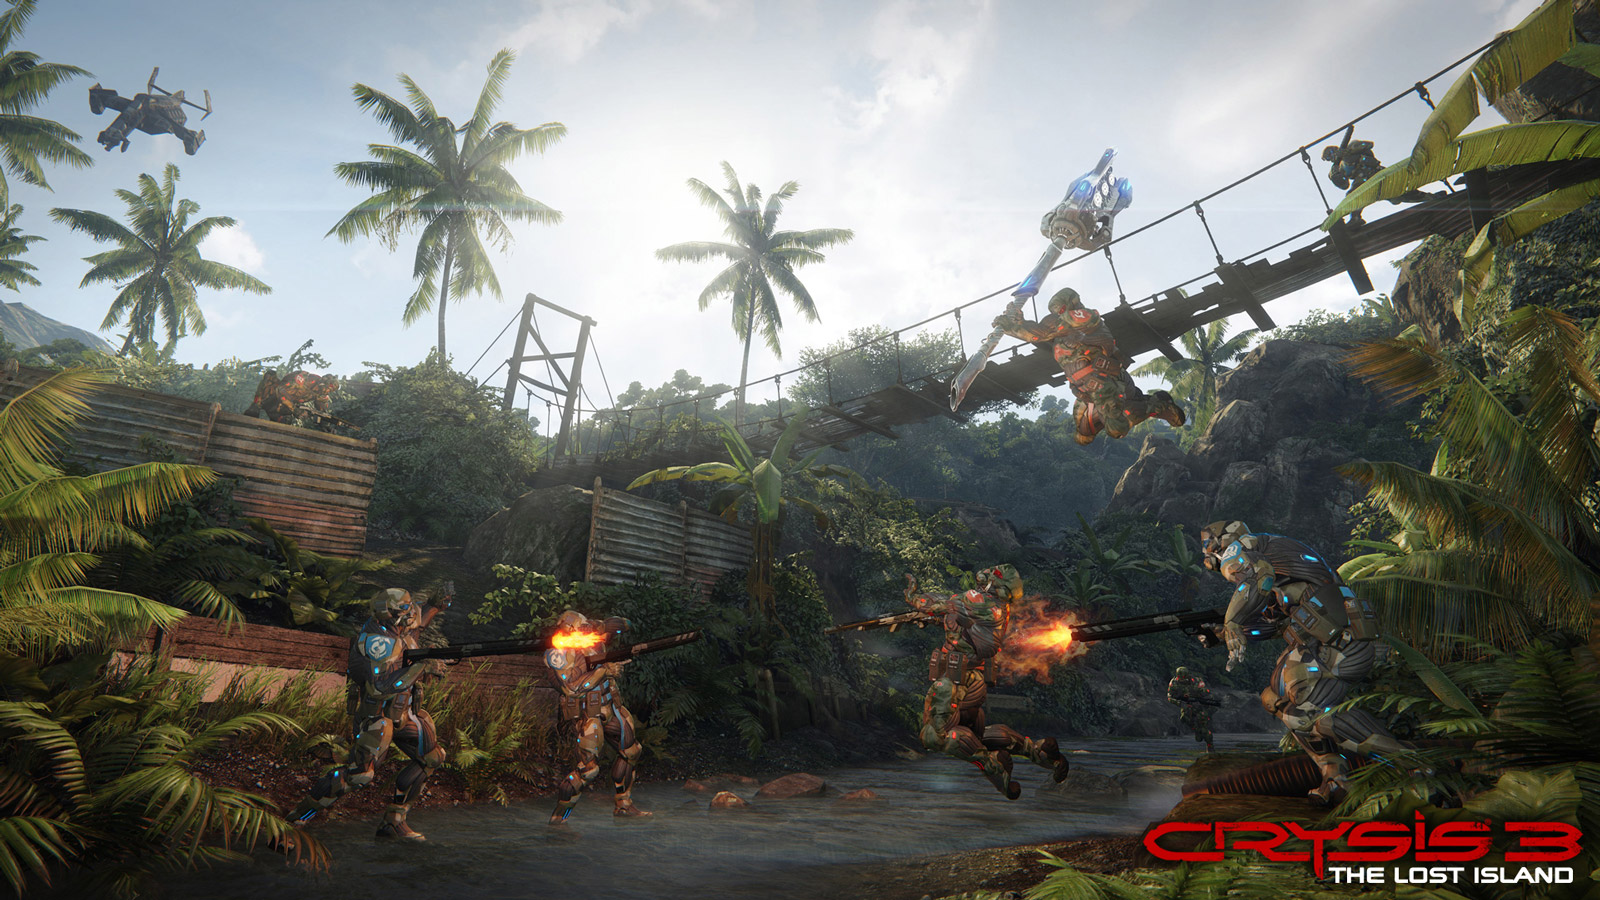 Crysis 3 Wallpaper in 1600x900